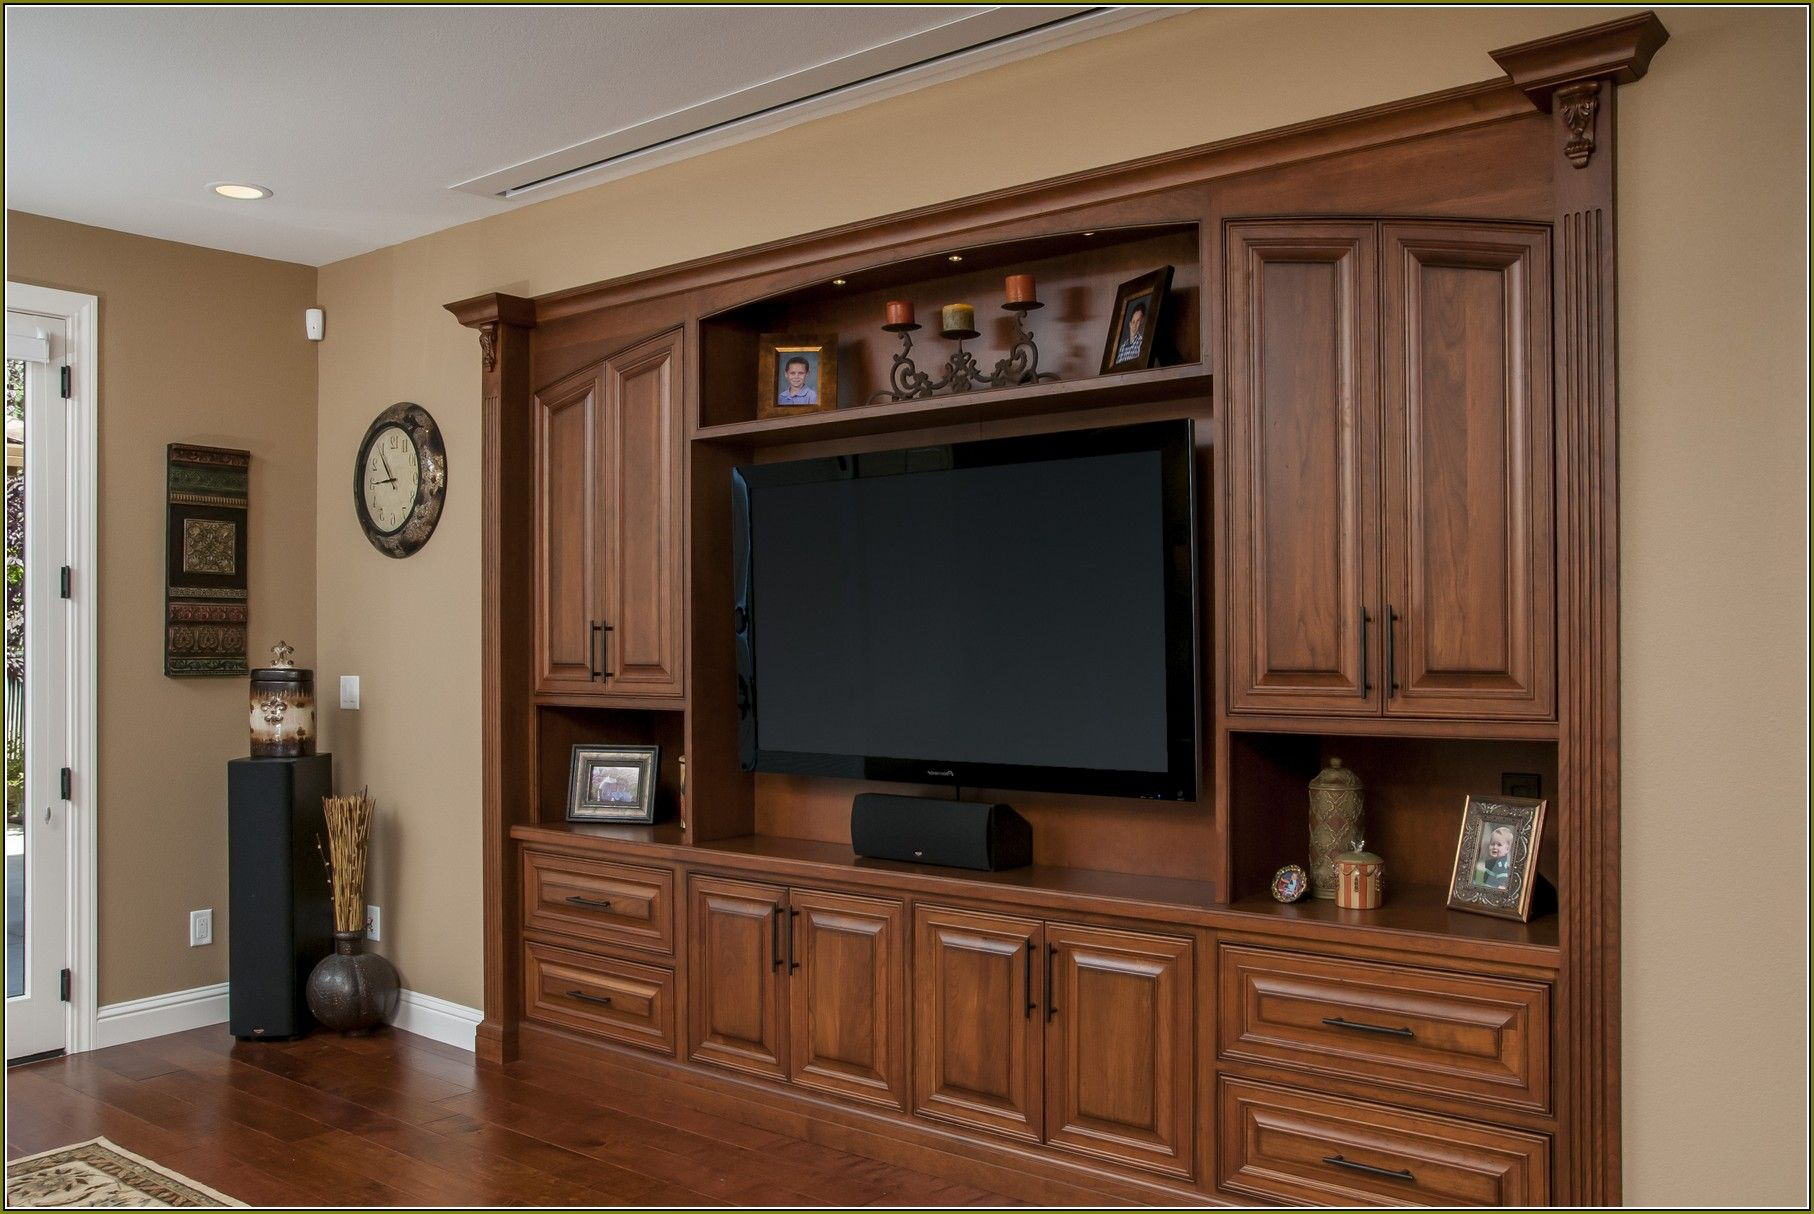 Wall To Wall Cabinets | Posts Related To Wall Flat Screen Tv Cabinet